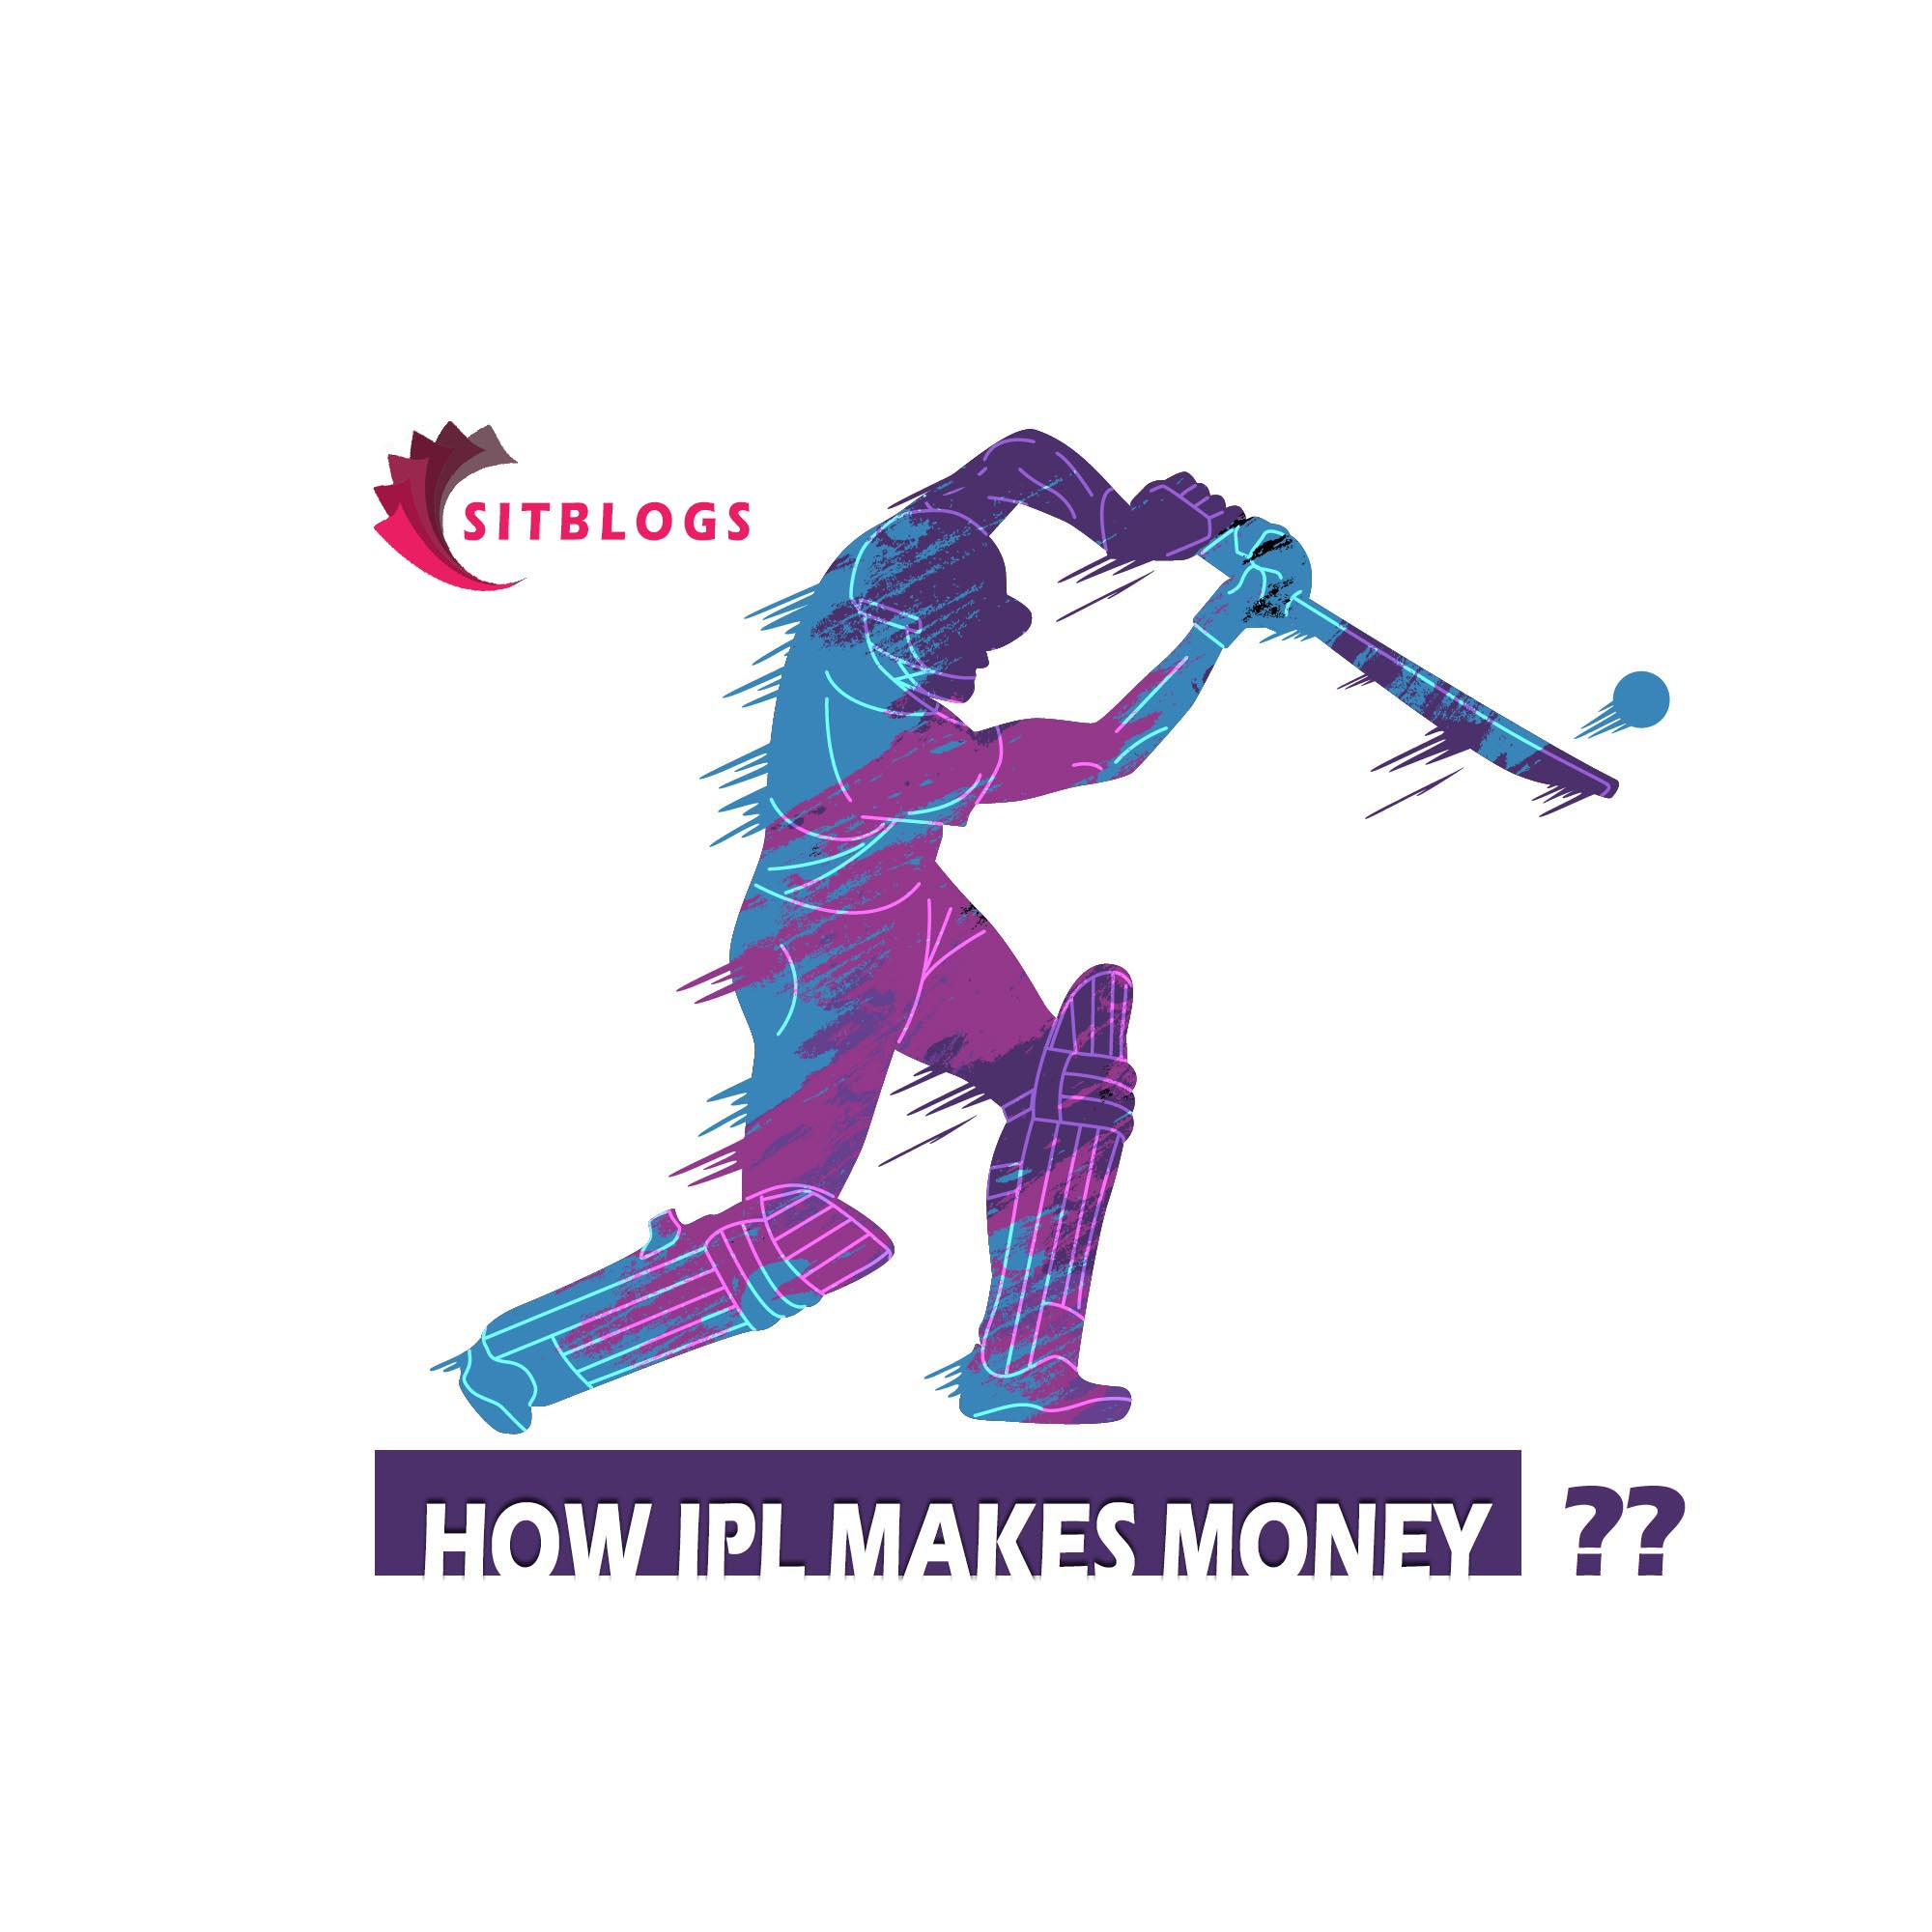 How Ipl makes money